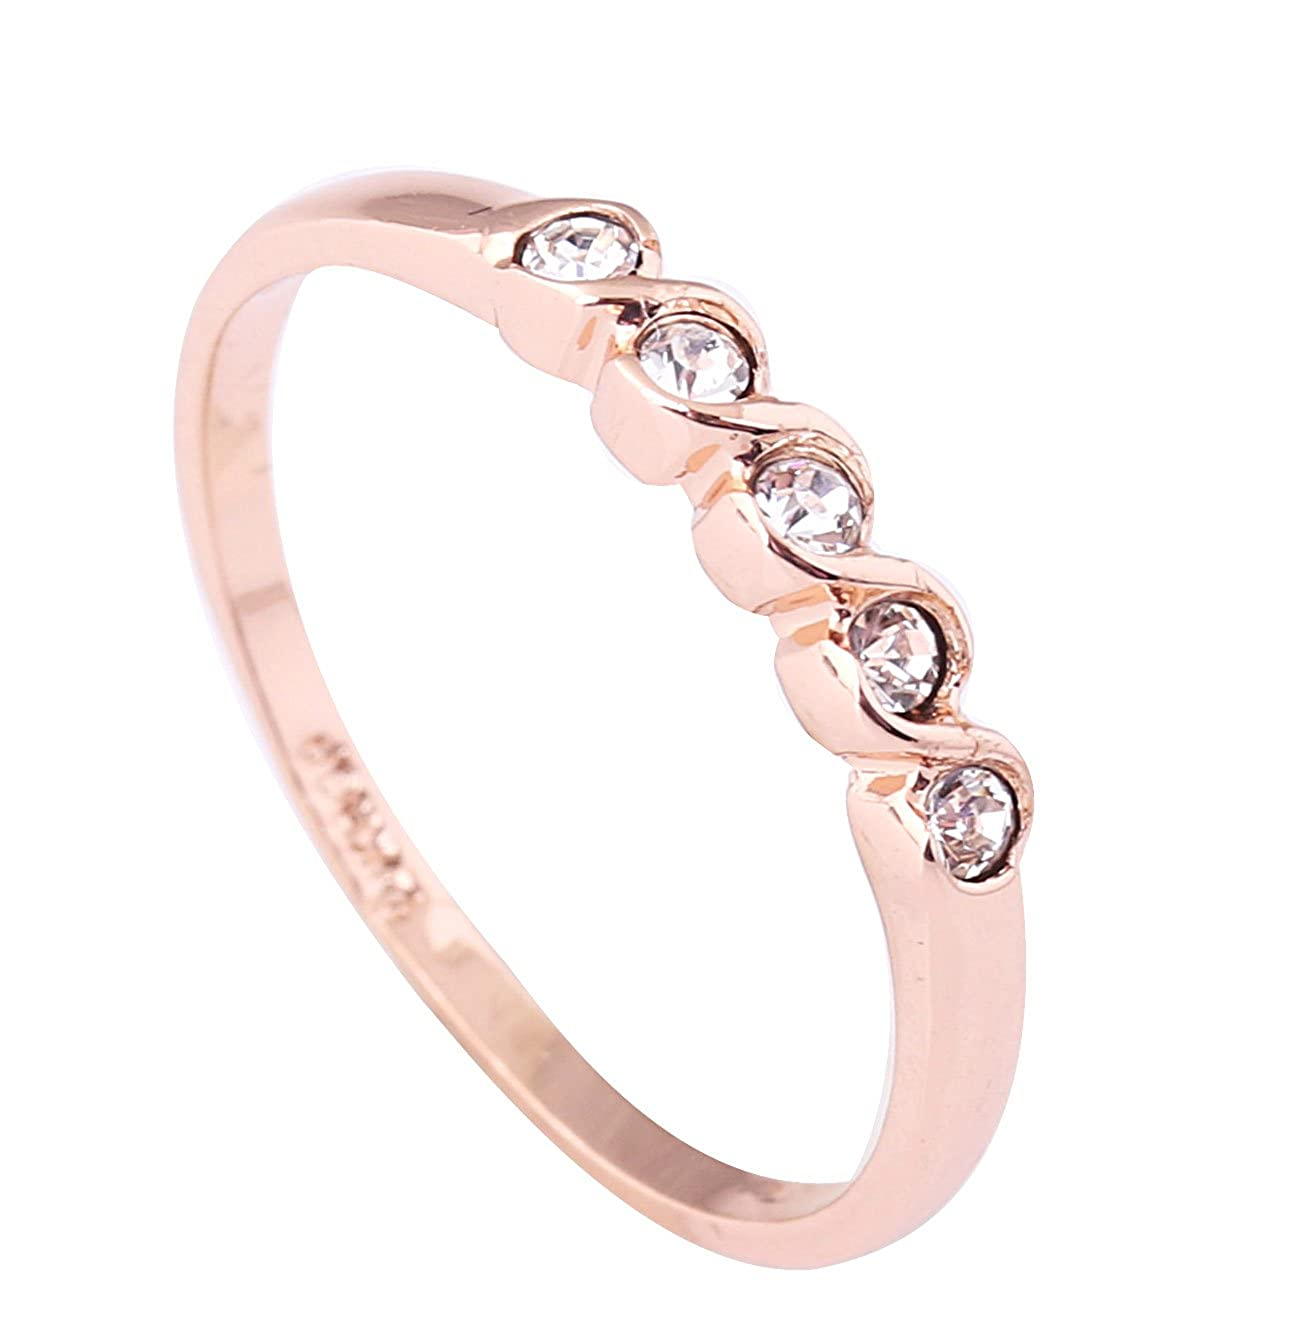 Acefeel Simplicity Style 18K Gold Plated Czech Drilling Band Ring Valentine's Day Mother's Day Gift Ring R031